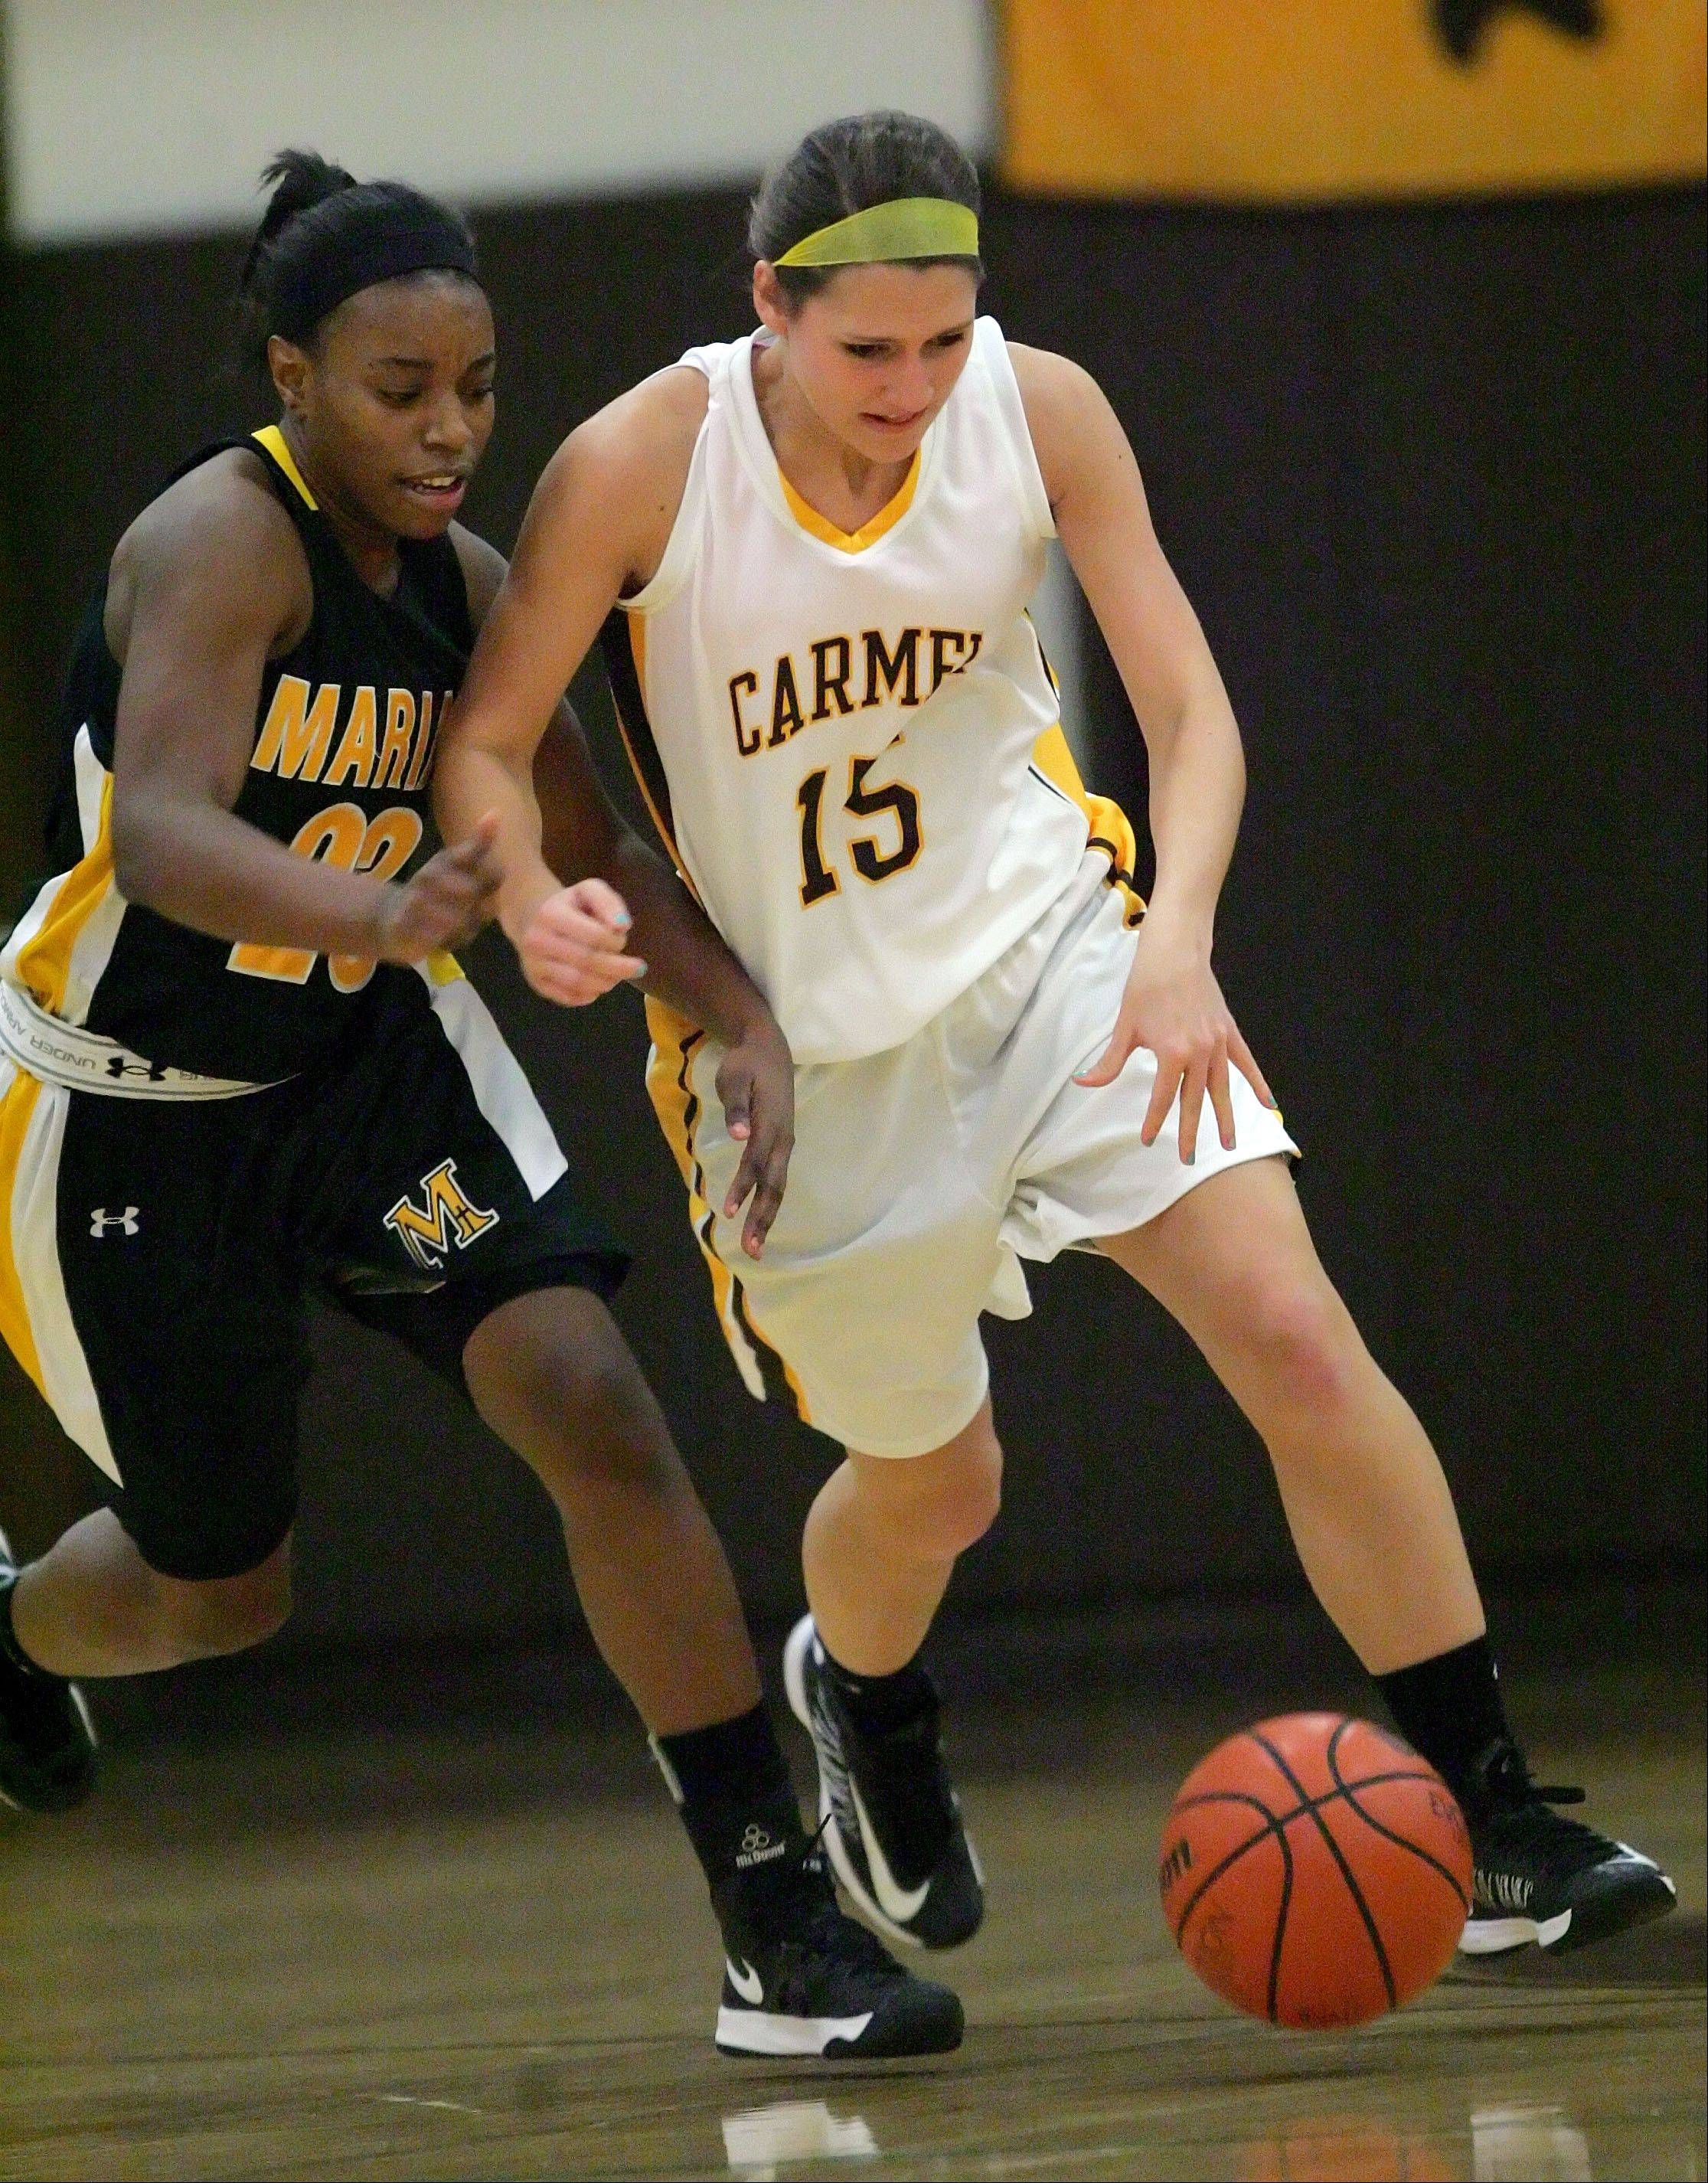 Carmel Catholic's Paige Gauthier, right, drives on Marian Catholic's Aliyah Isaac.